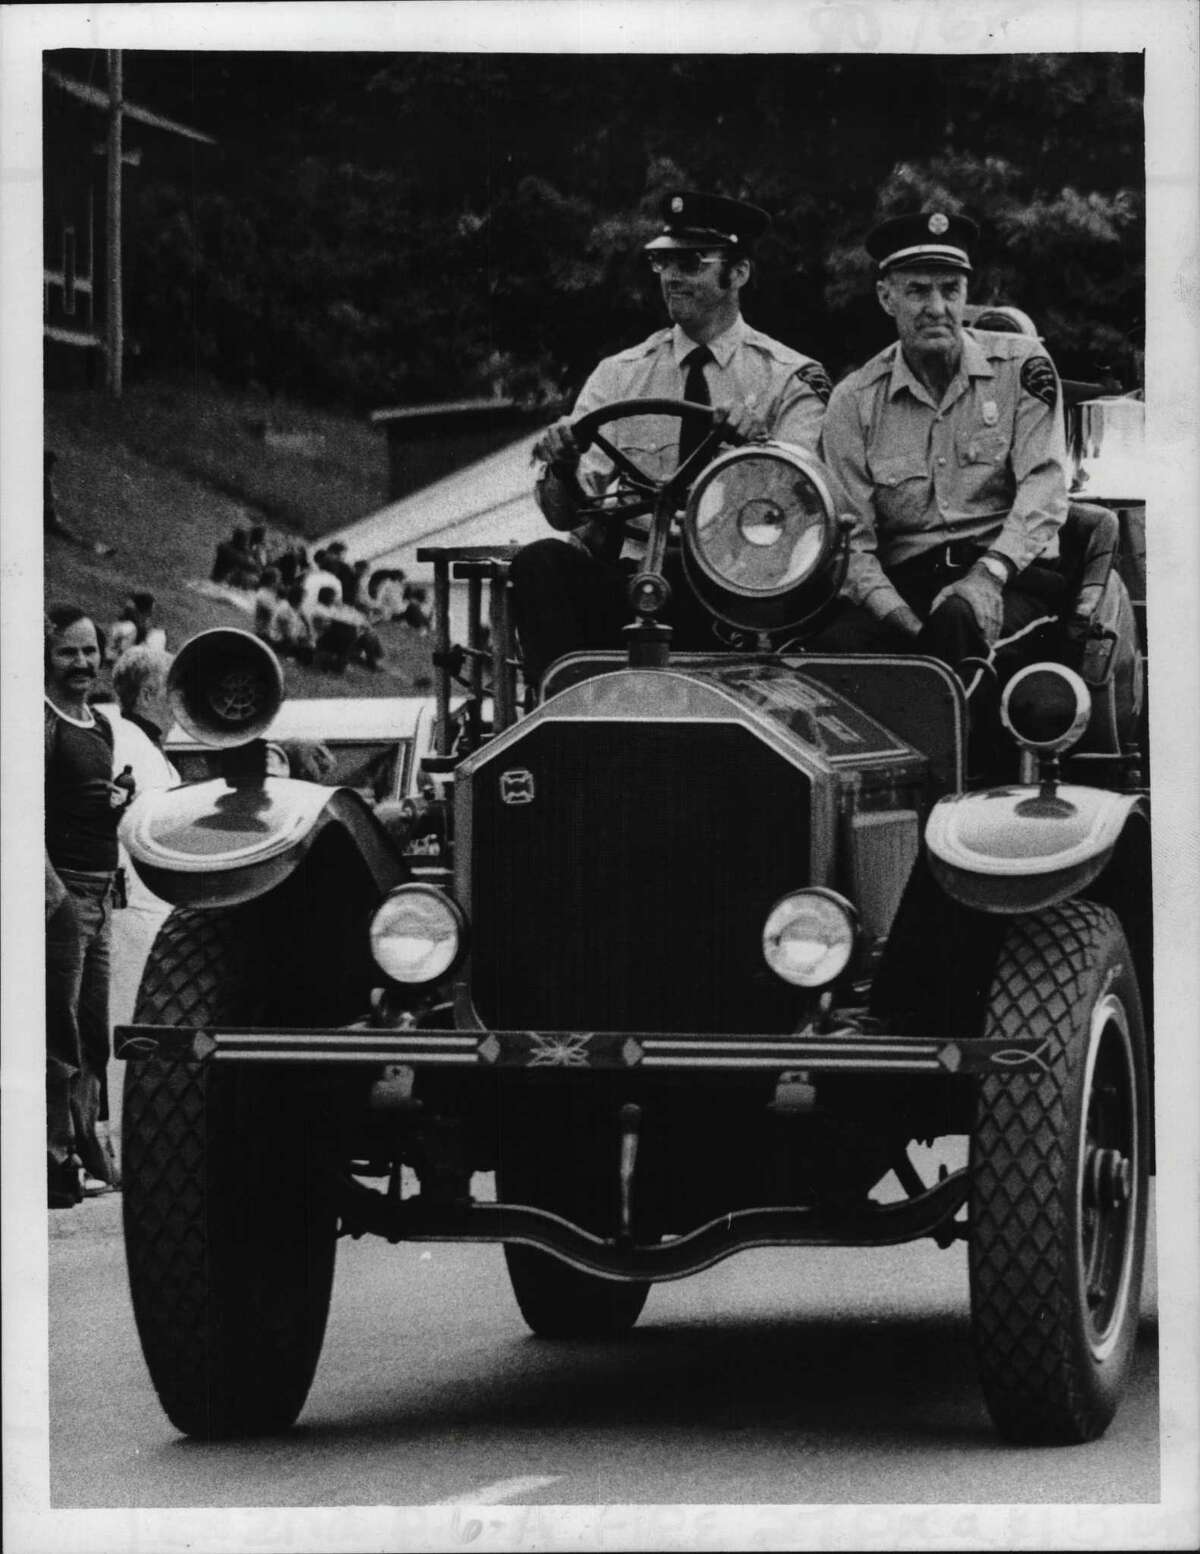 Firemen from the North Queensbury Fire Department parade their antique fire engine along the main street of Lake George as part of the Hudson Valley Firemen's Convention over the weekend. Over 8,000 firemen took part in the dress parade bringing fire units from the eastern section of New York, from Westchester County to the Canadian border. June 12, 1978 (Times Union Archive)